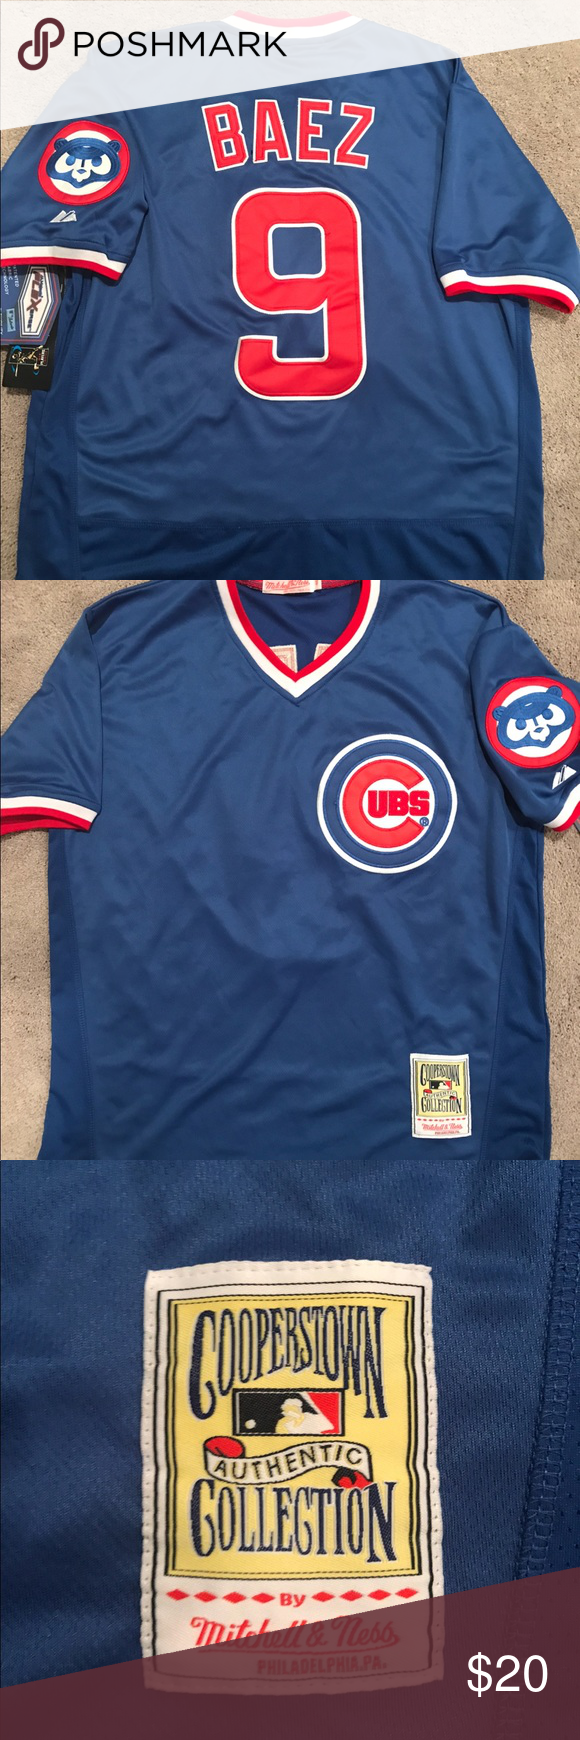 detailed look 77cb8 7d80d Men's Javier Baez Chicago Cubs Throwback Jersey XL Chicago ...